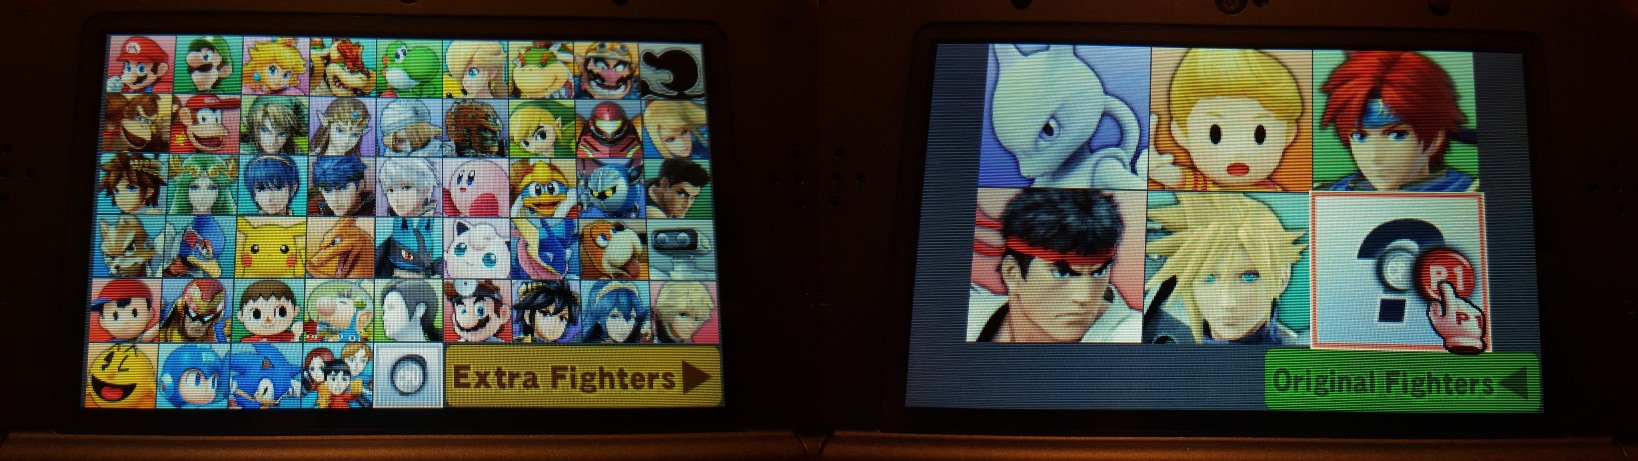 Posted On December 15 2015 By BrianNE Brian In 3DS News The Character Select Screen Super Smash Bros